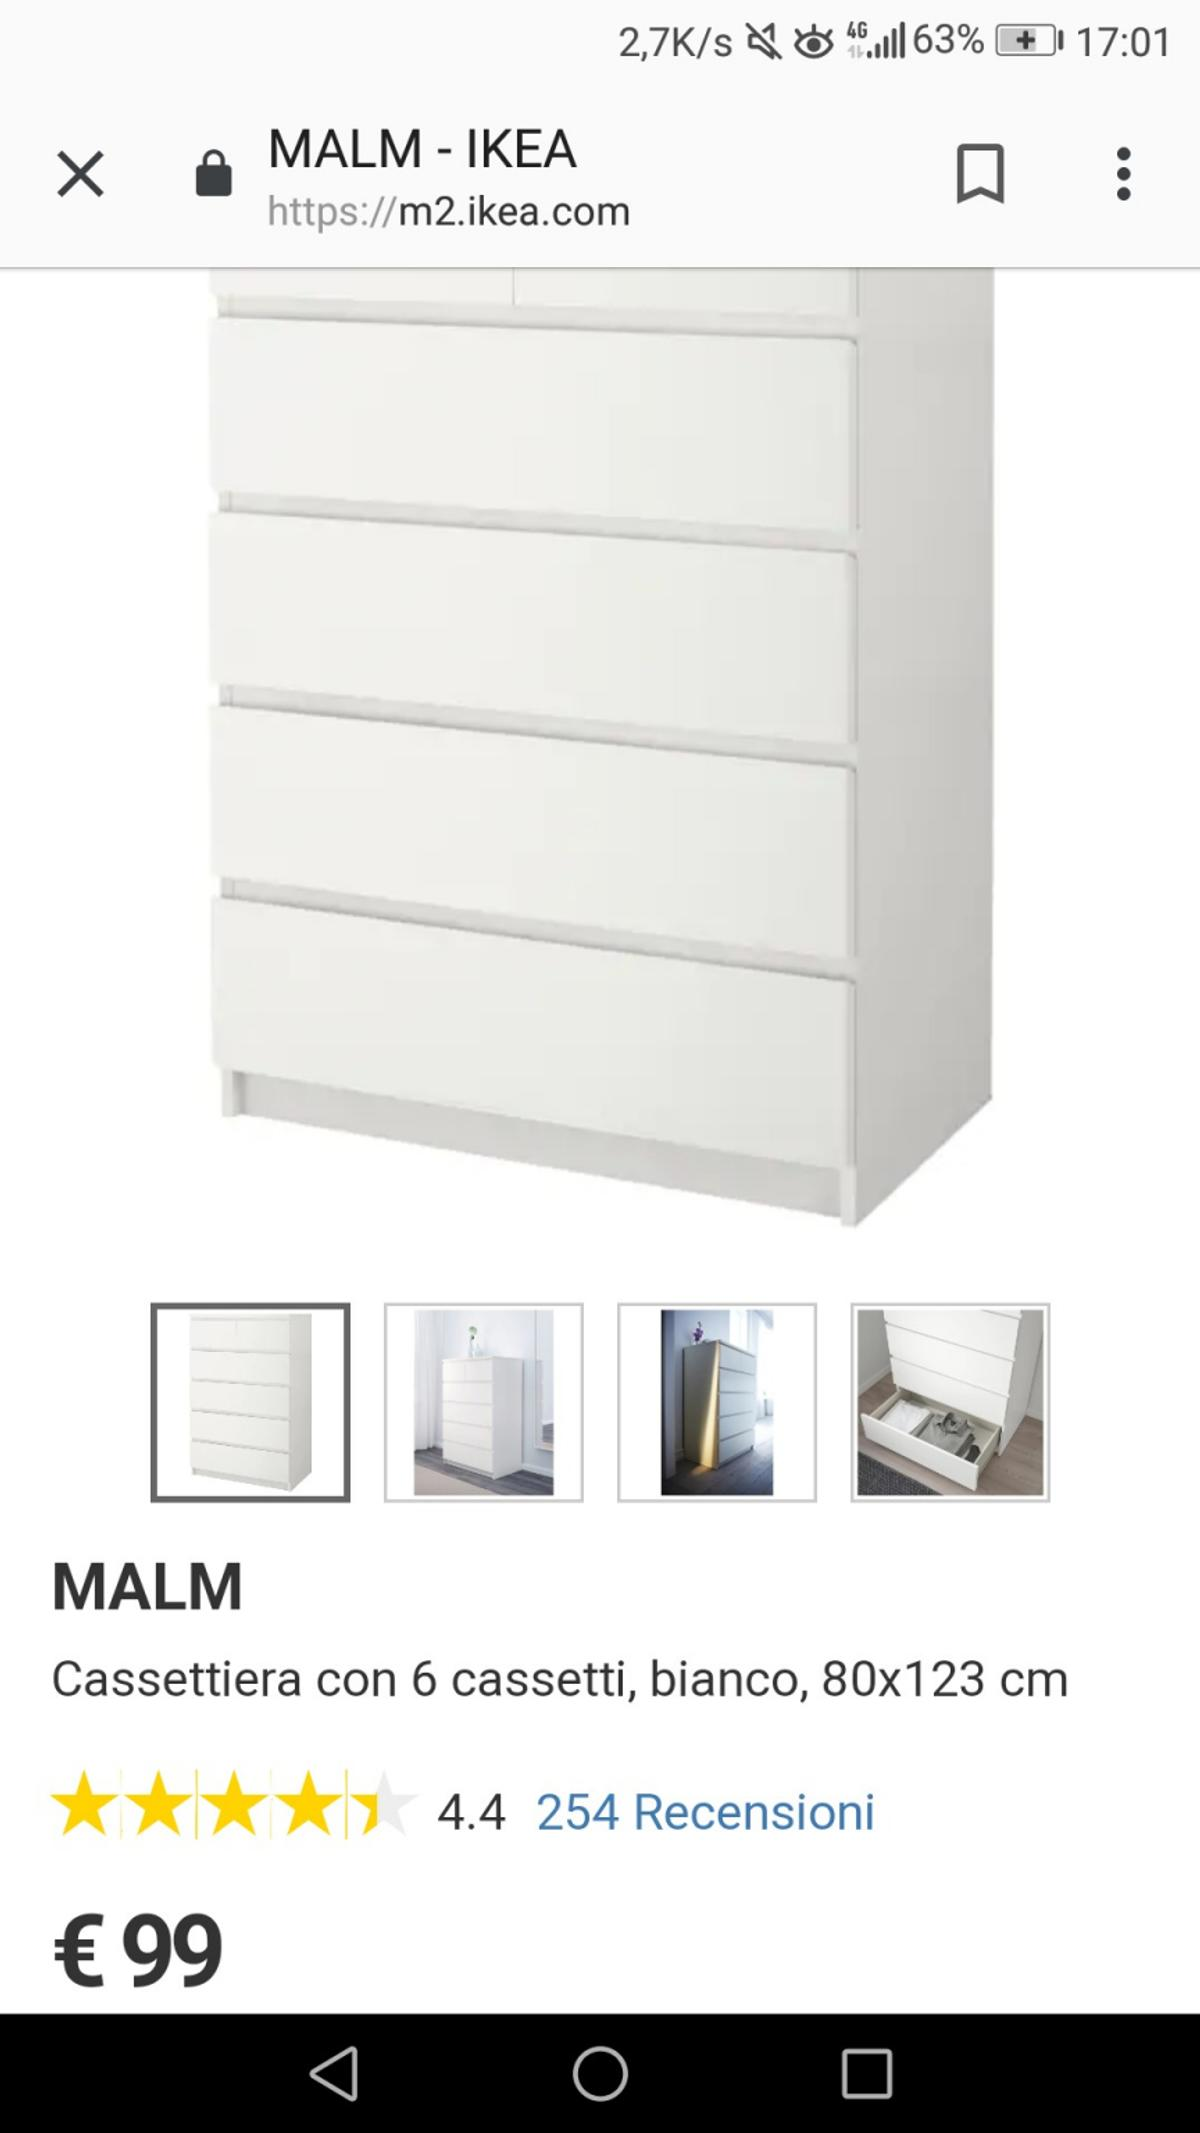 Ikea Malm Cassettiera 6 Cassetti.Cassettiera 6 Cassetti Ikea Bianca In 20065 Inzago For 55 00 For